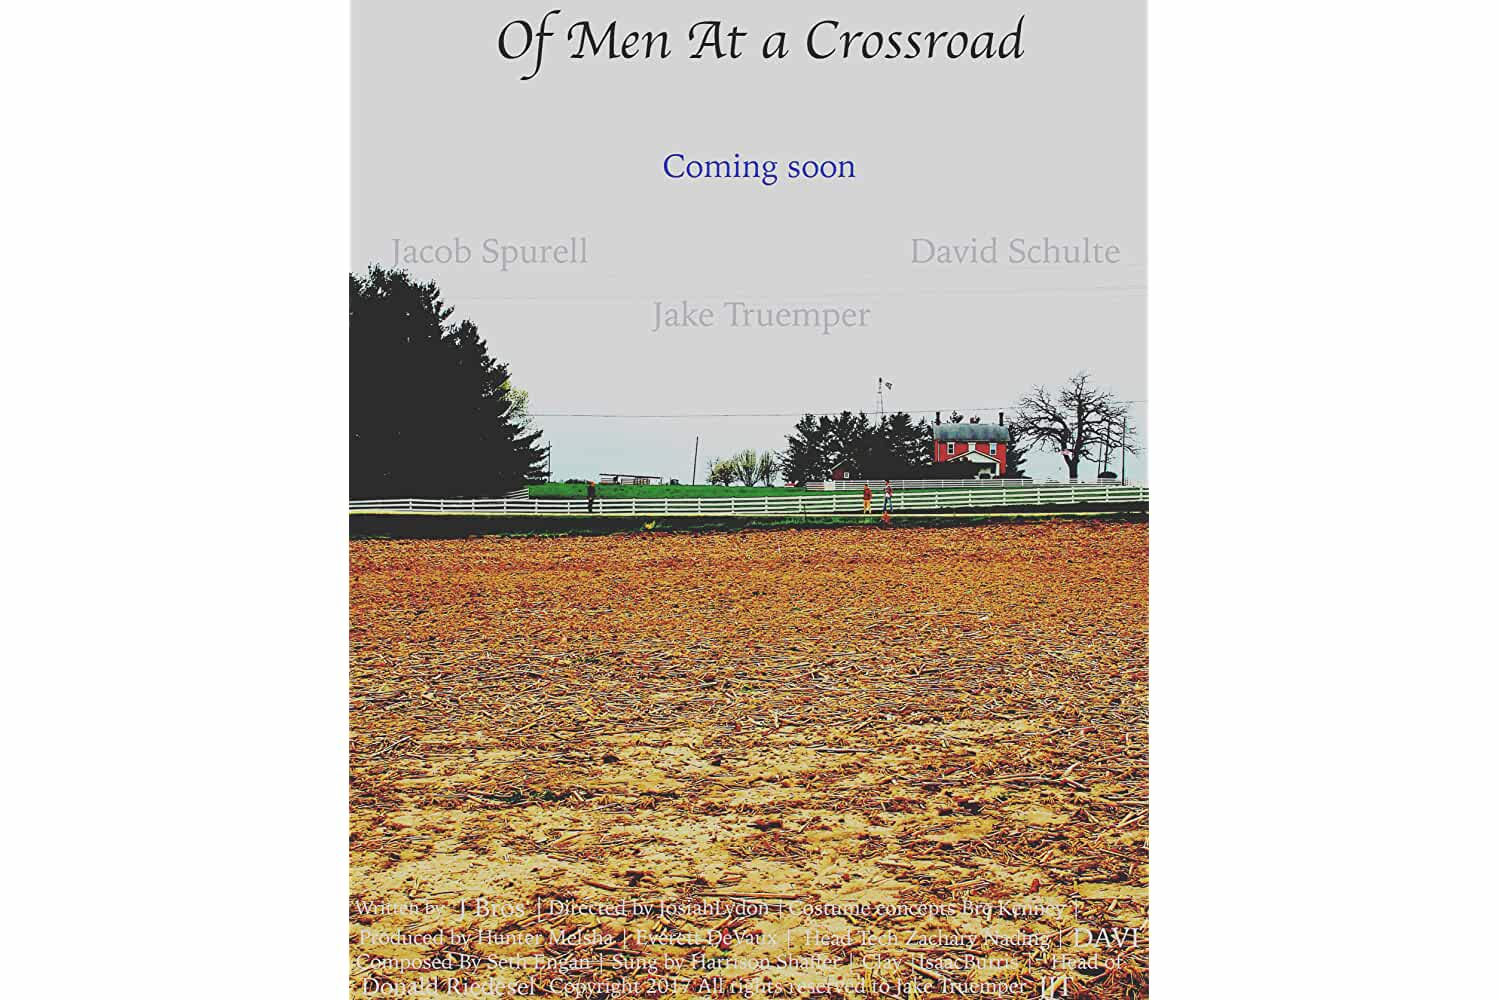 Of Men at a Crossroad (2018)